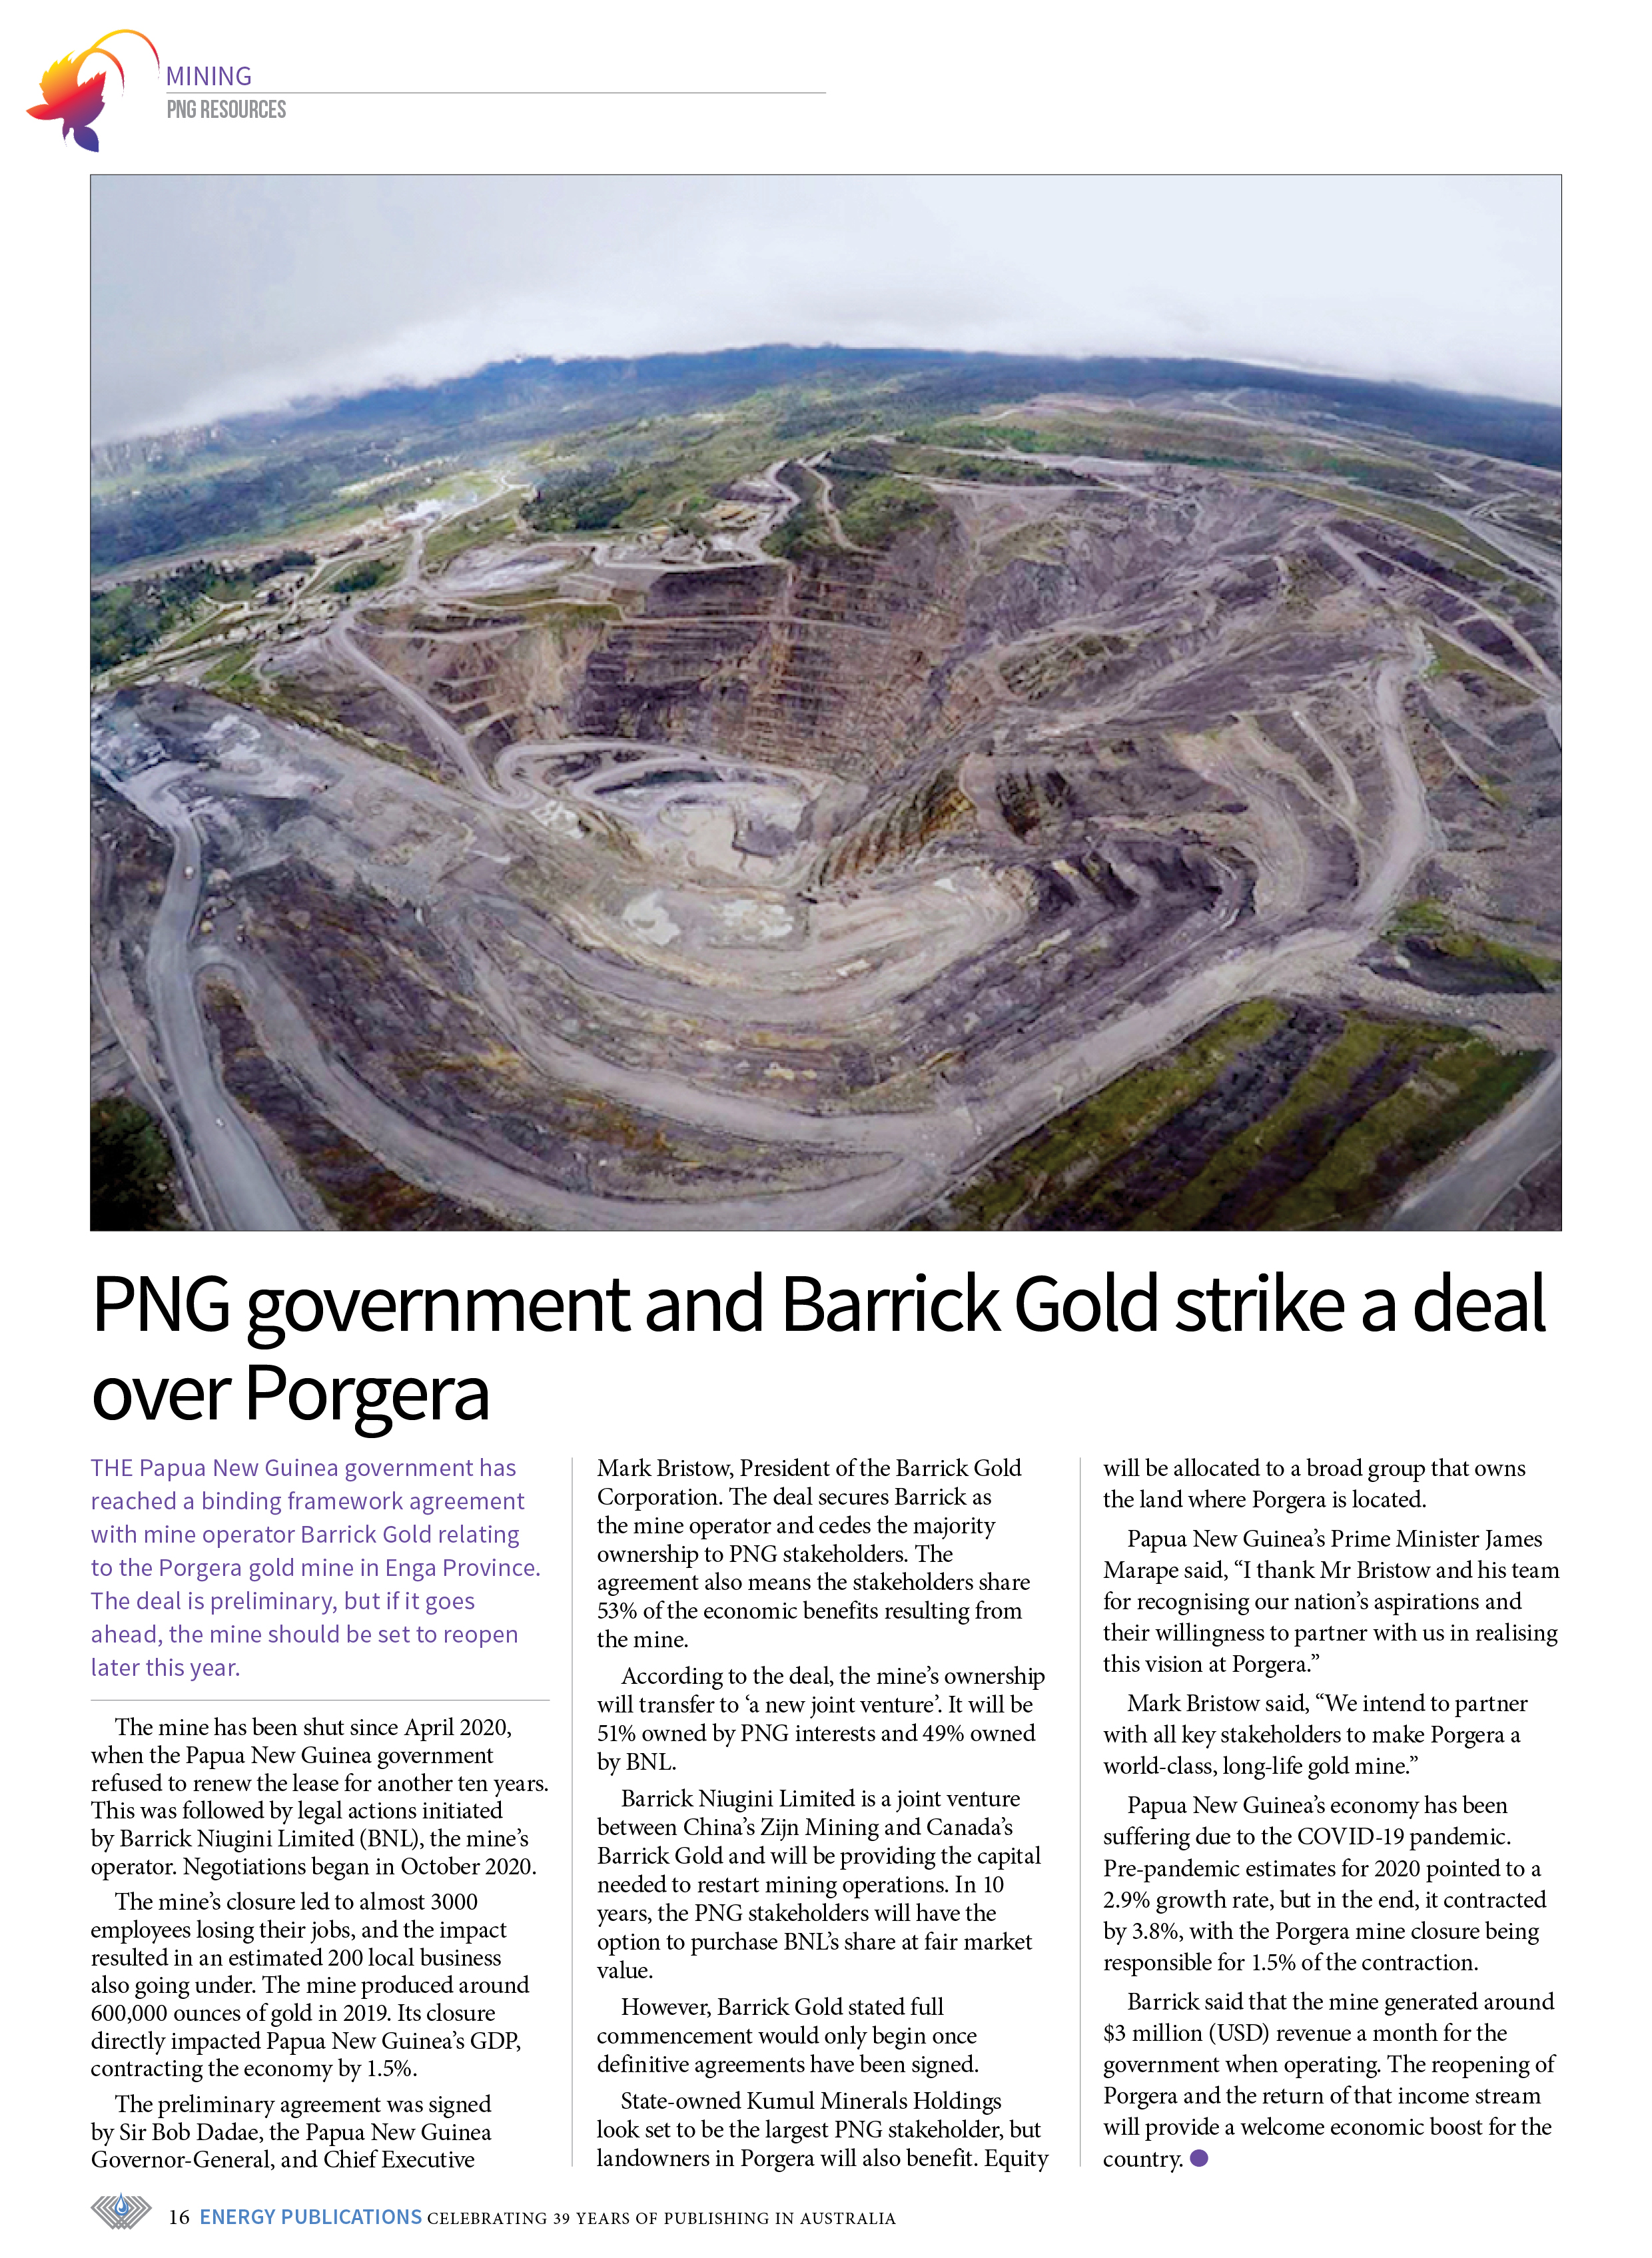 PNG Resources Q2 2021 – Page 18